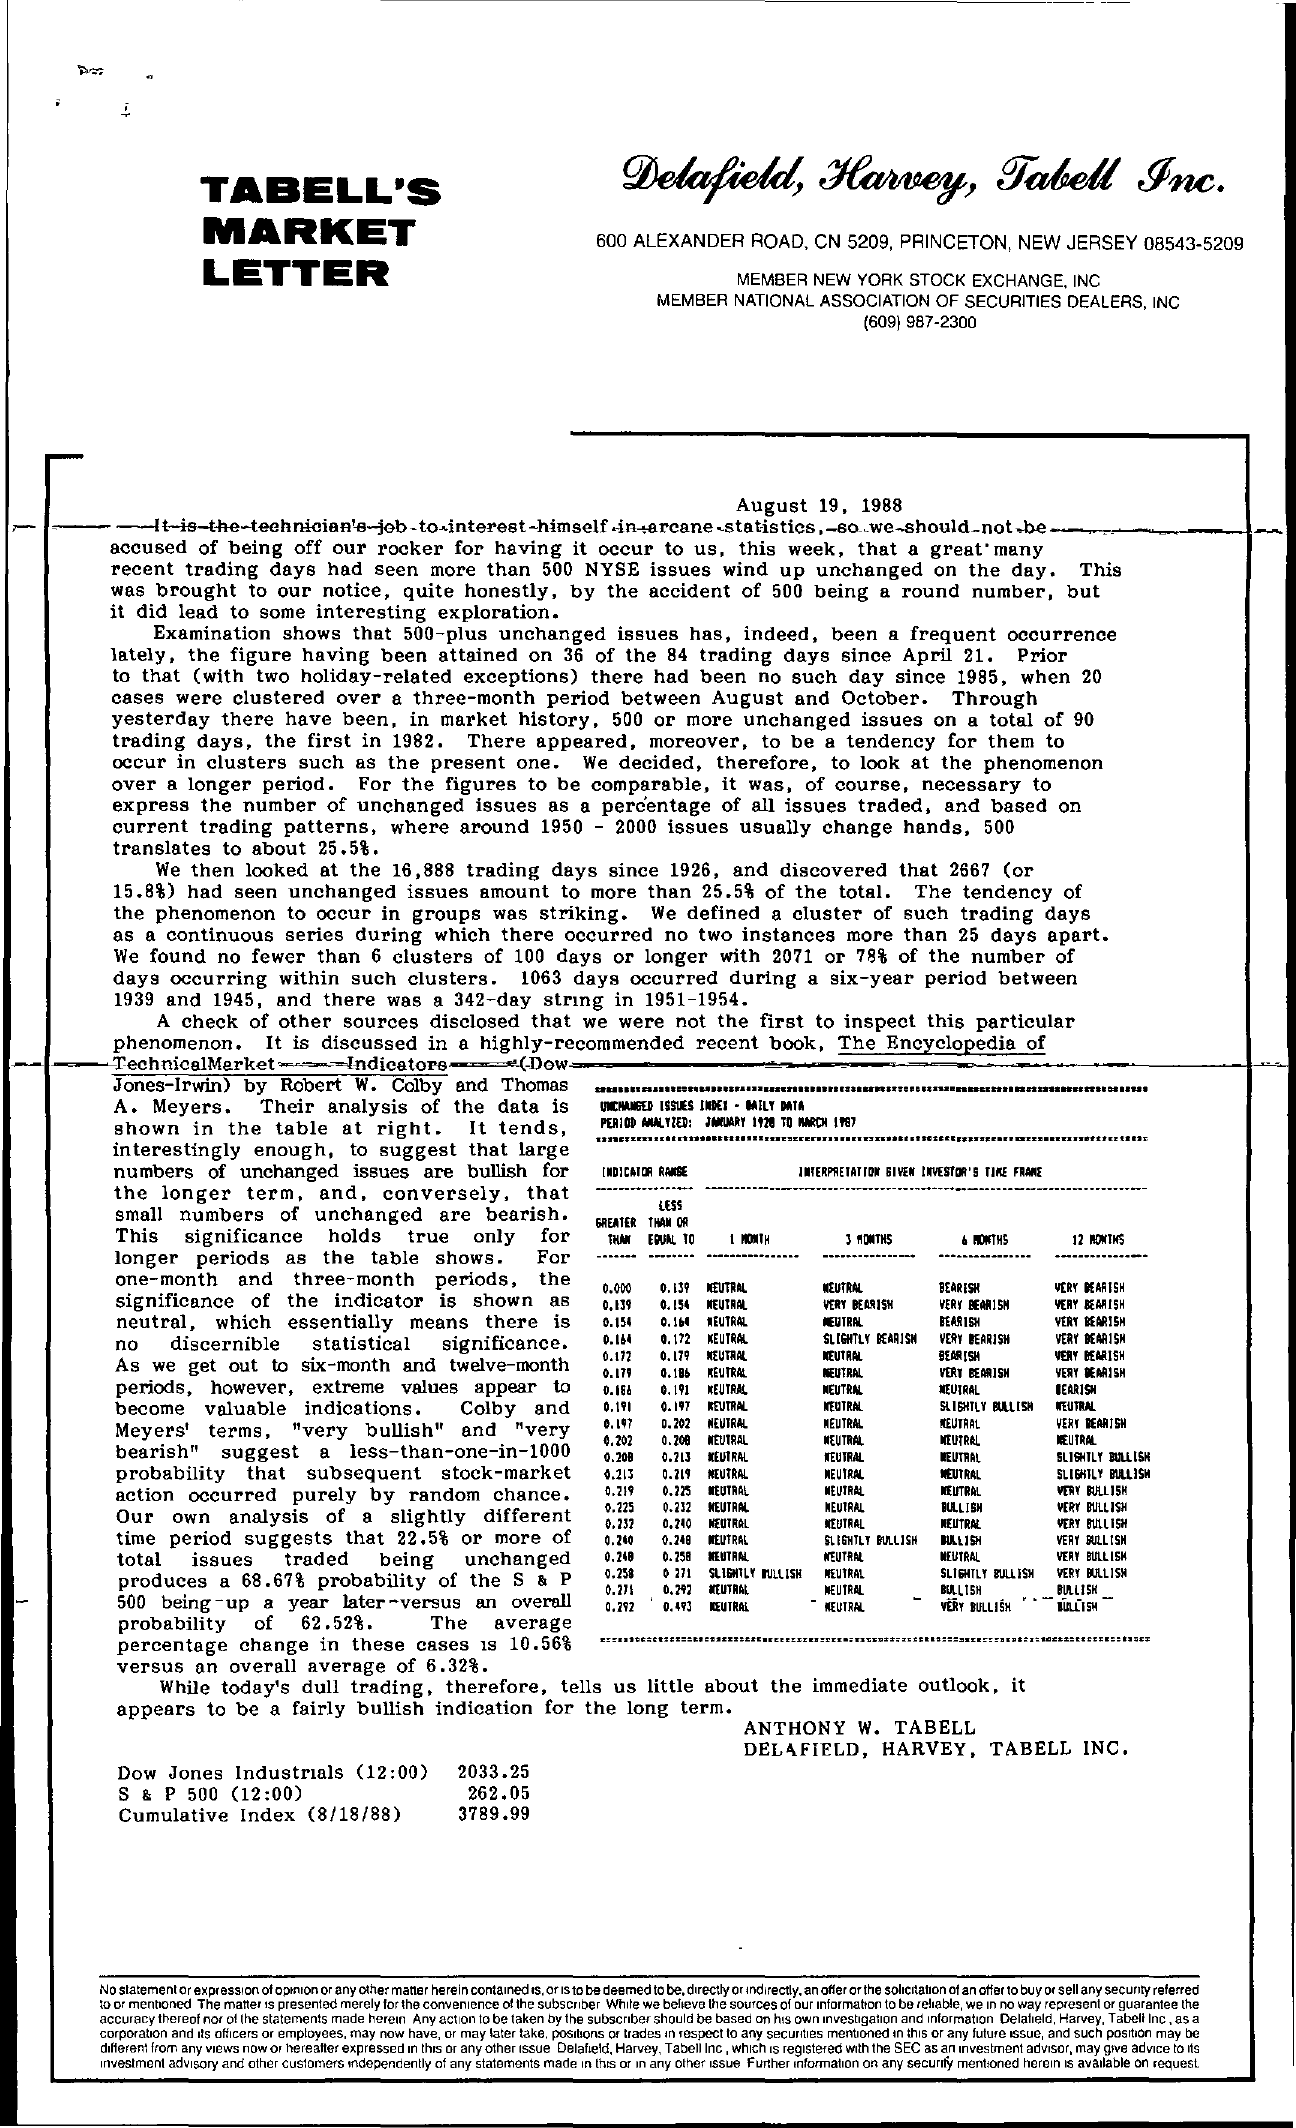 Tabell's Market Letter - August 19, 1988